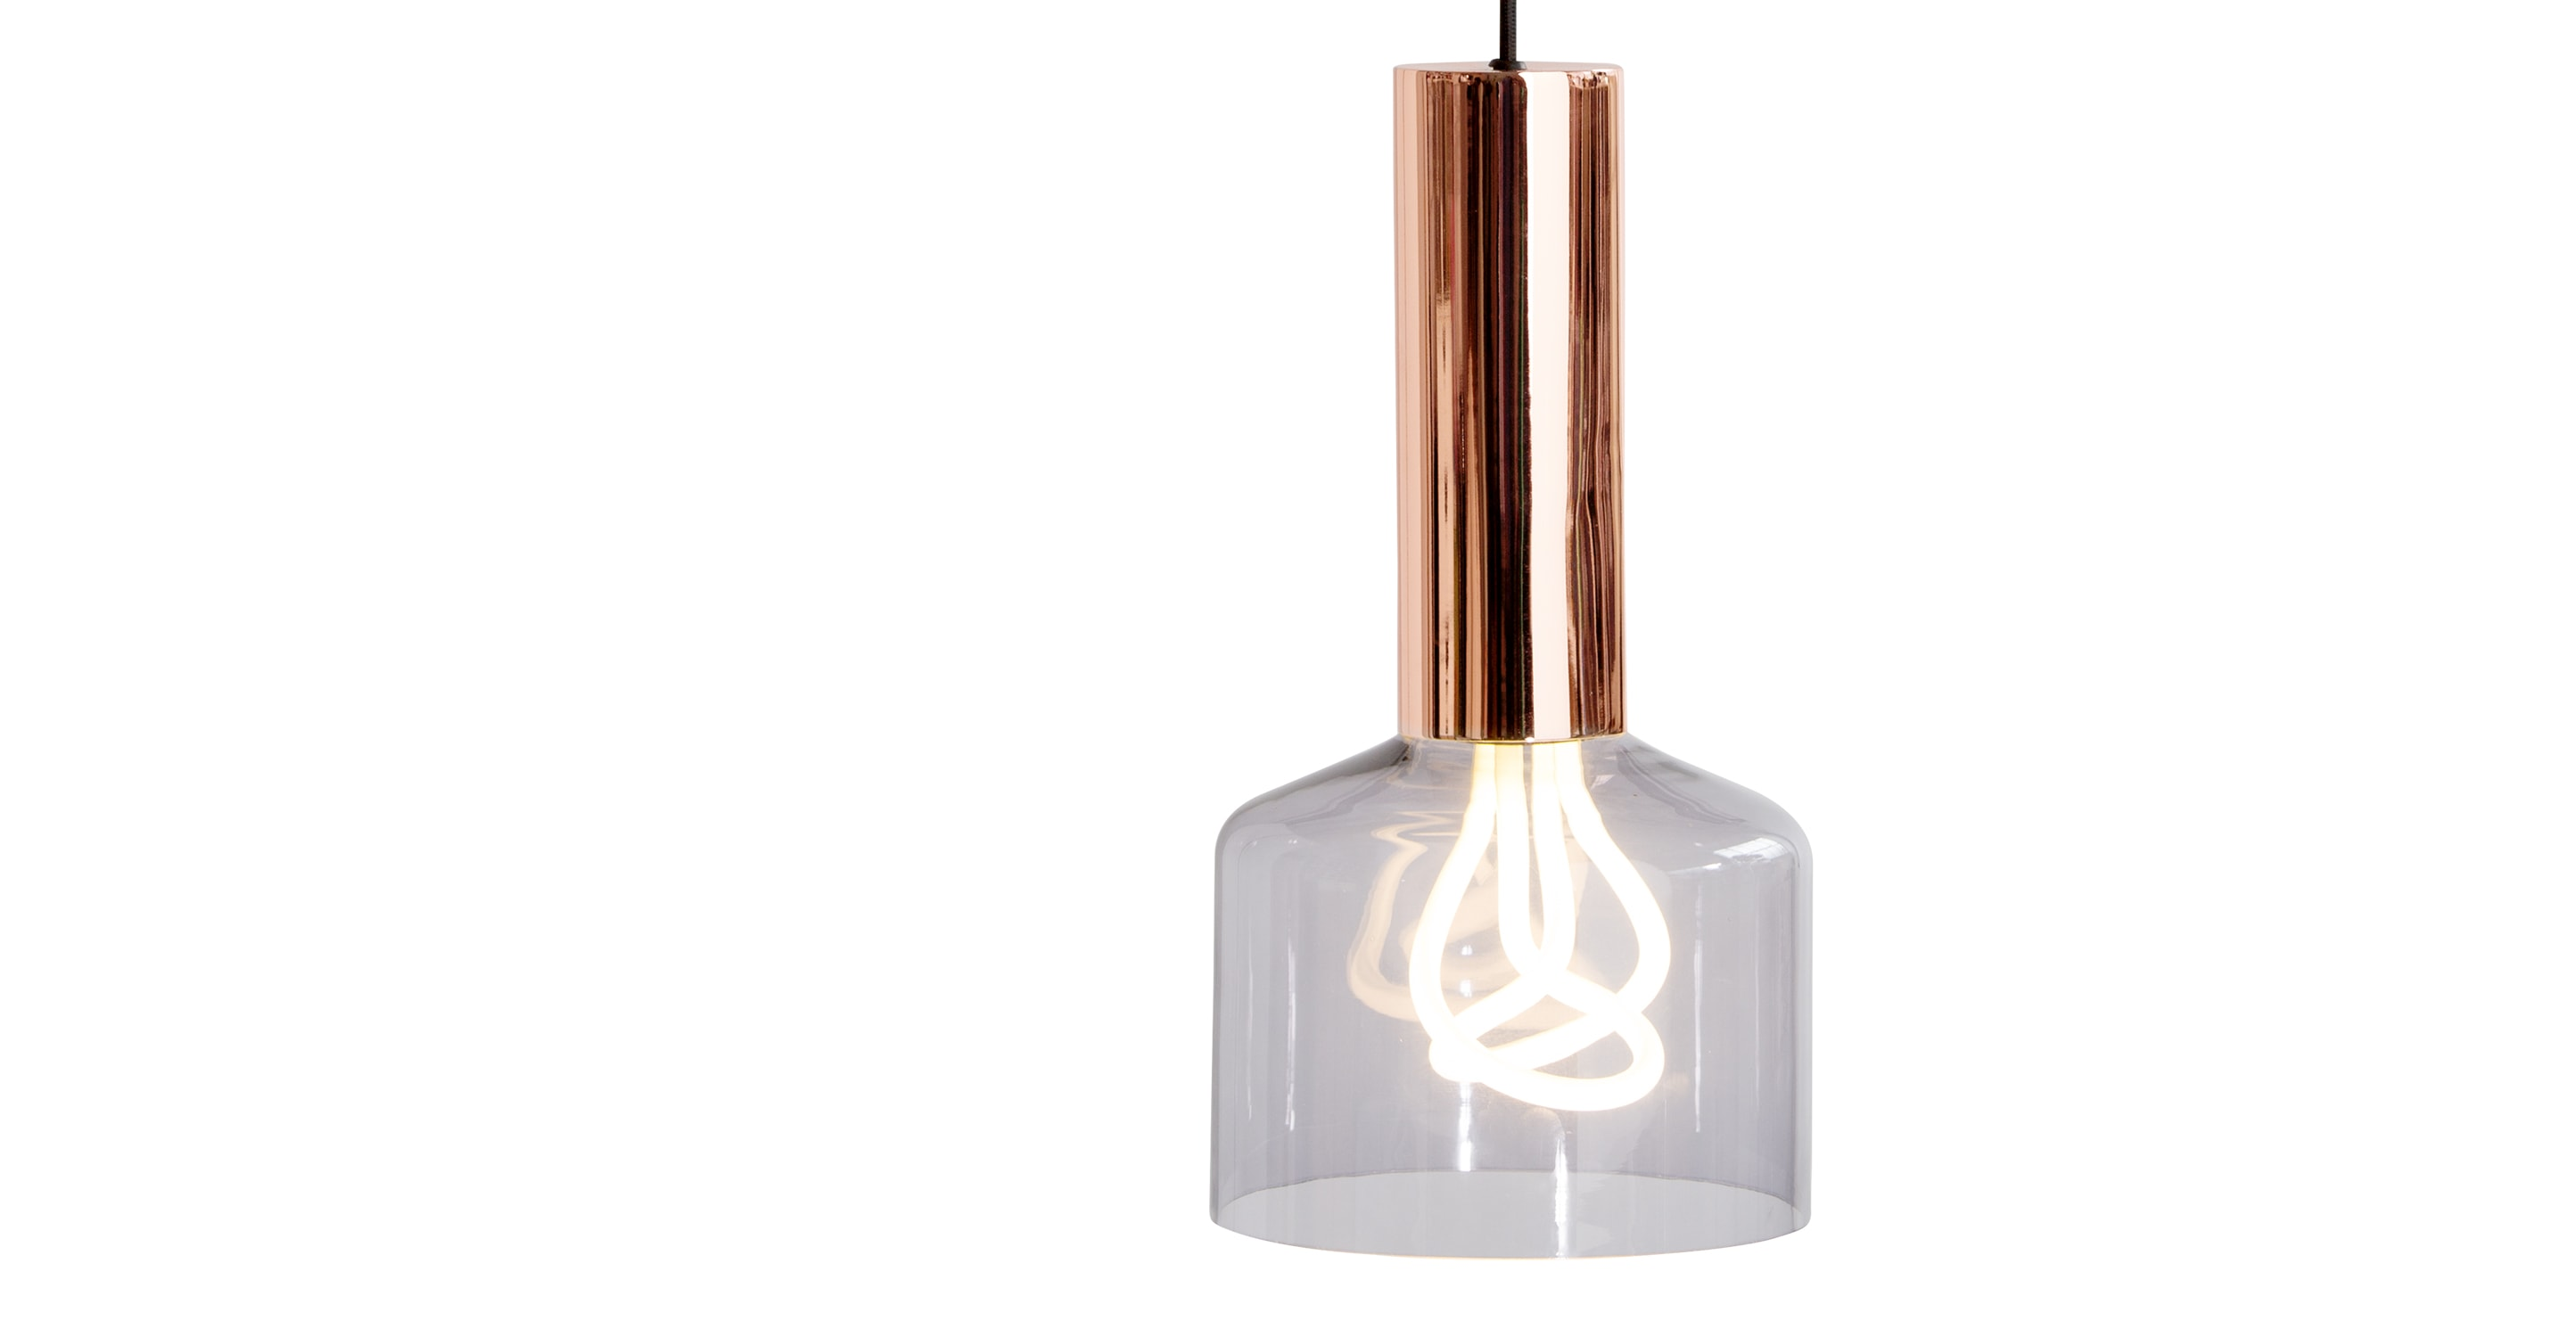 rehm pendant lamp and plumen 001 bulb smoke grey and copper. Black Bedroom Furniture Sets. Home Design Ideas